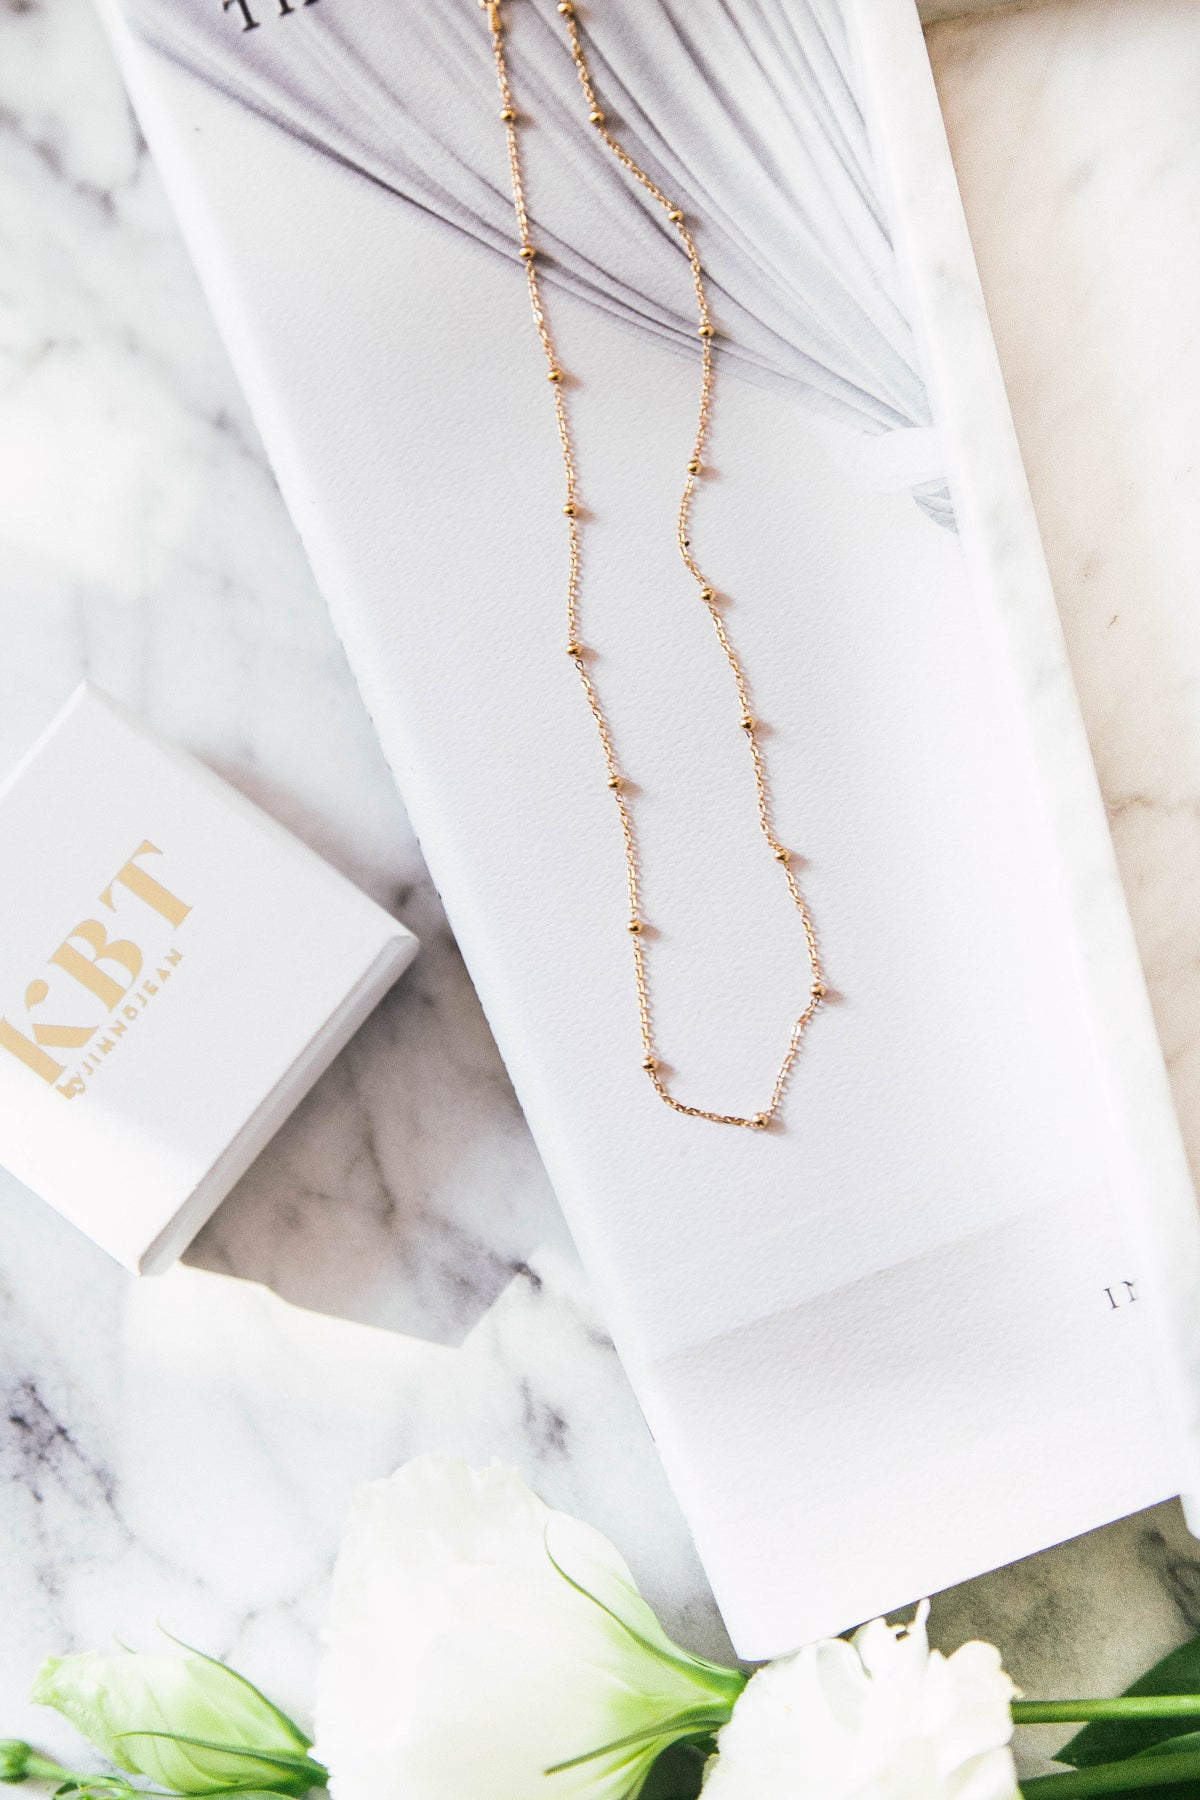 Real 9kt Gold Chain by KBT